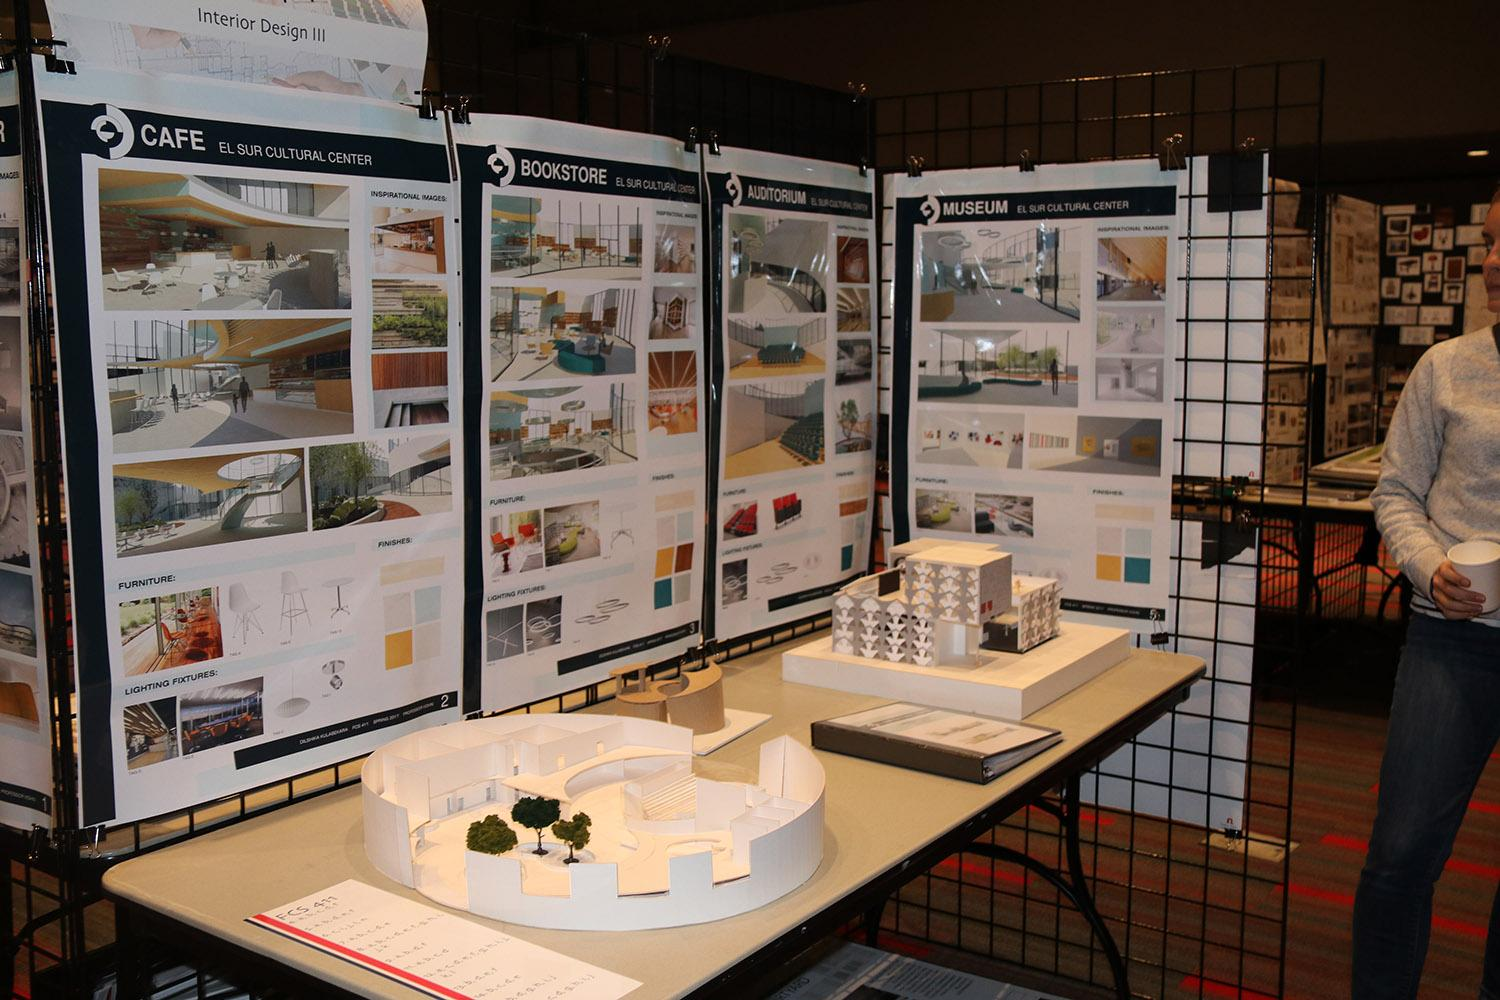 Interior designs of cultural centers by students on display in the Northridge Center. Photo credit: Kelcey Henderson